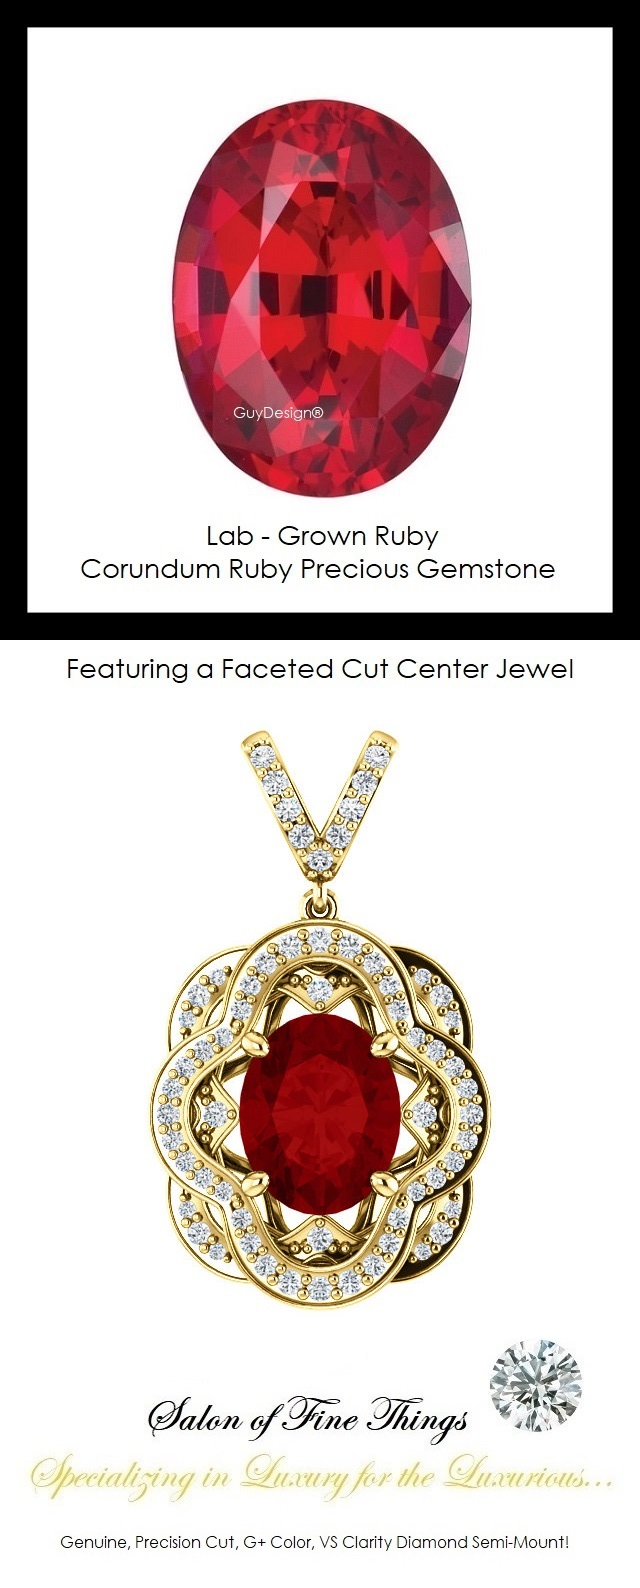 guydesign-opulent-14-karat-yellow-gold-pendant-necklace-dg121689.91020000.86121.9-3.50-carat.-lab-grown-corundum-ruby-set-with-precision-cut-g-vs-genuine-mined-diamonds-1.jpg